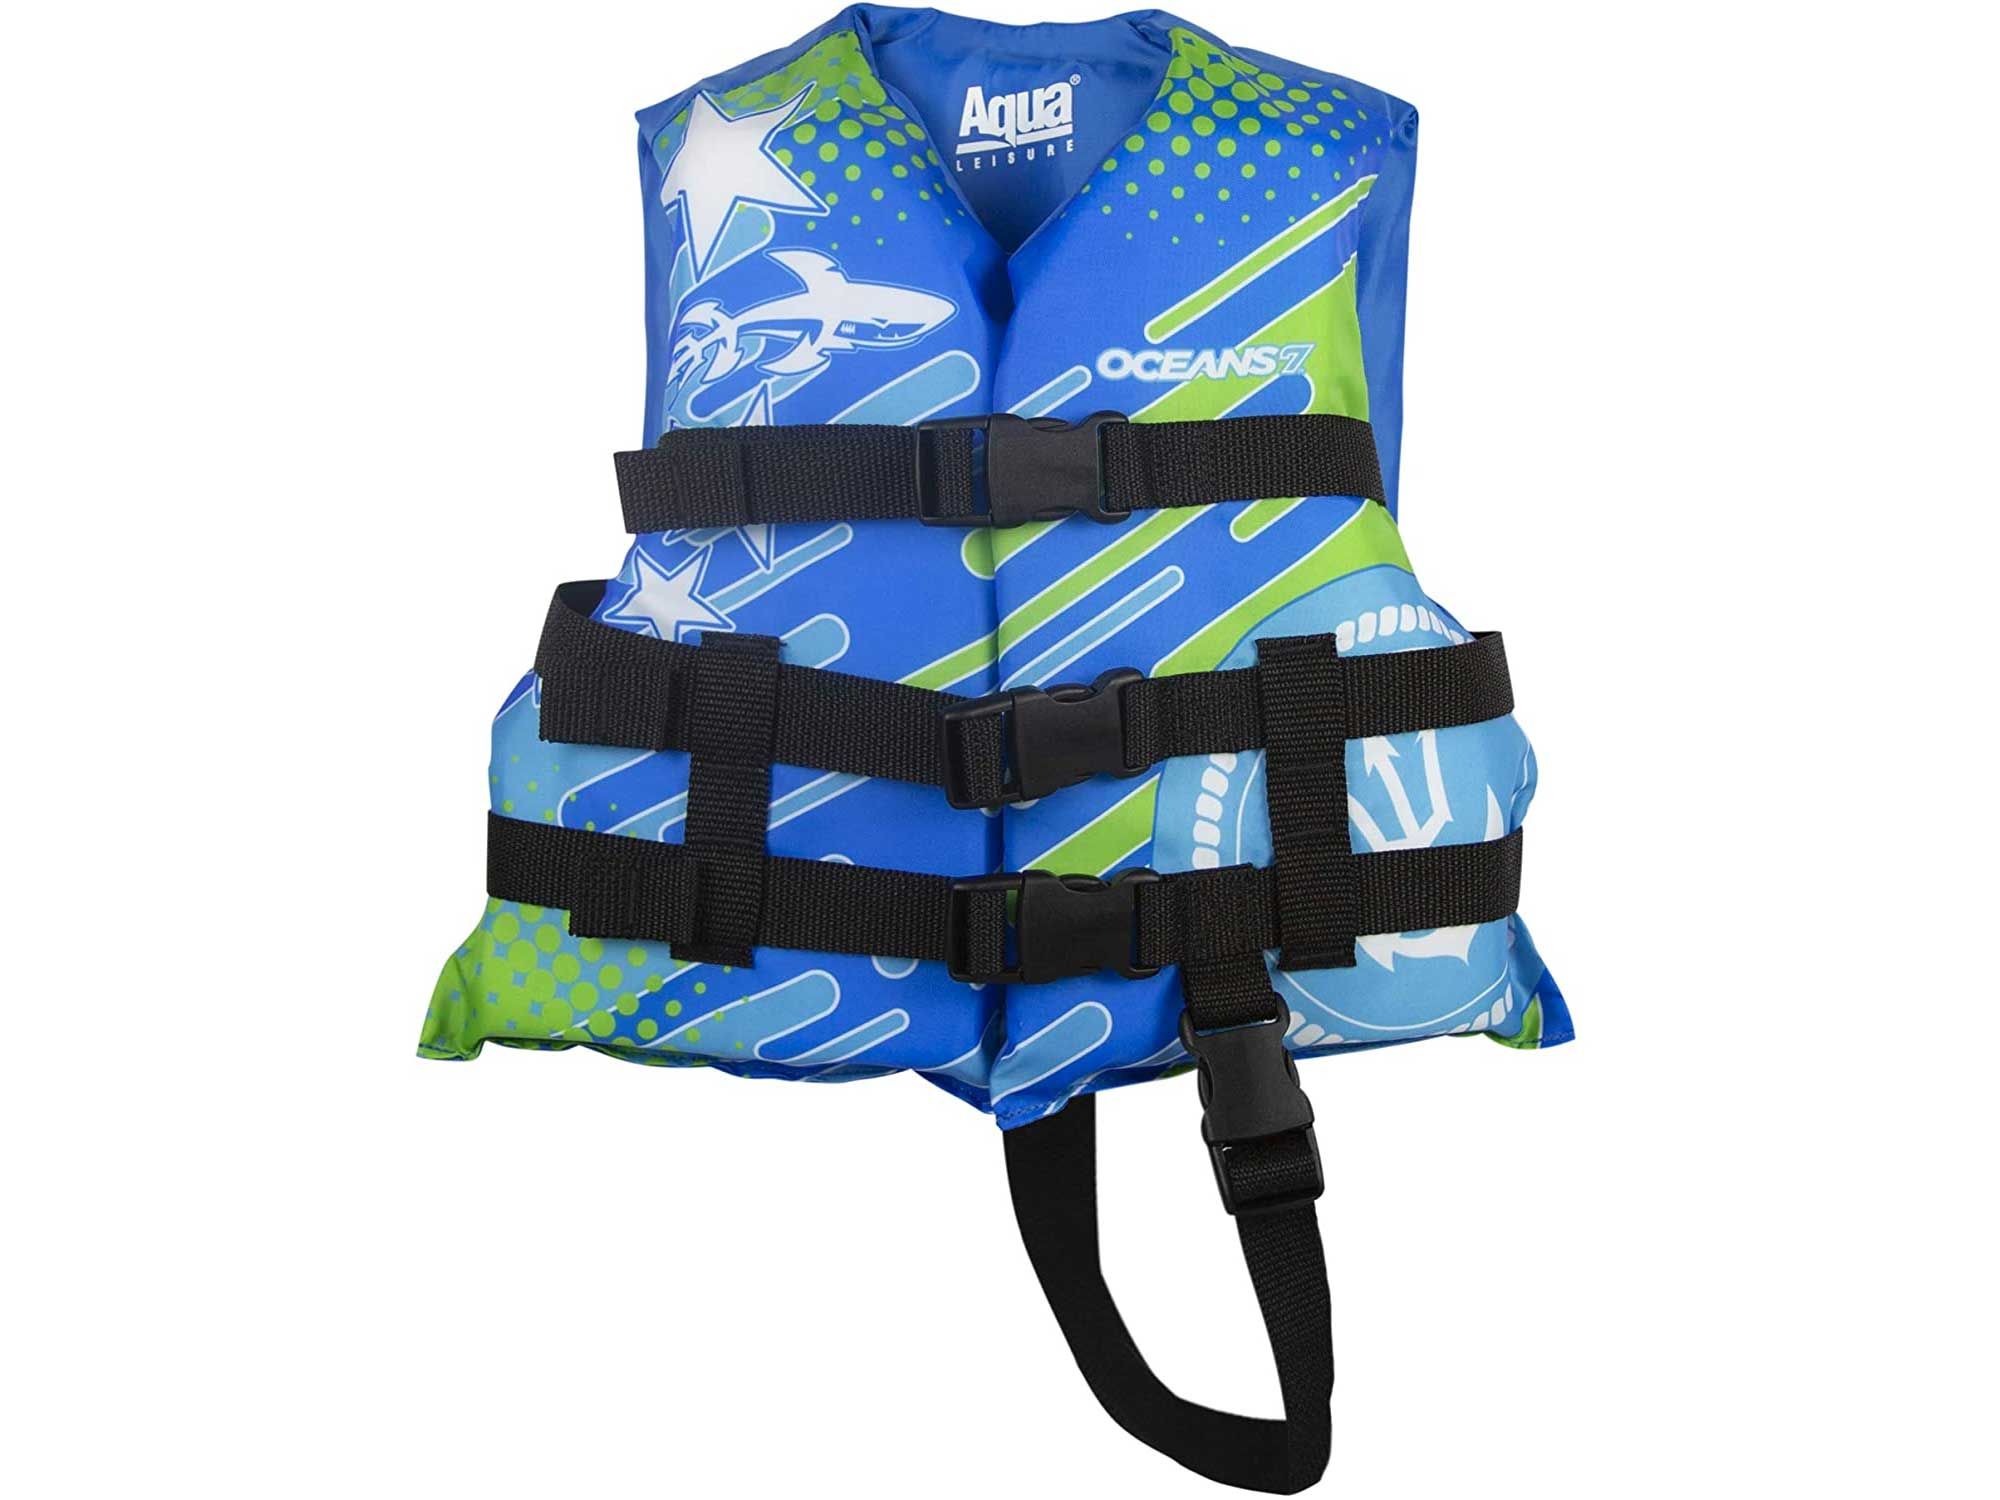 New & Improved Oceans7 US Coast Guard Approved, Child Life Jacket